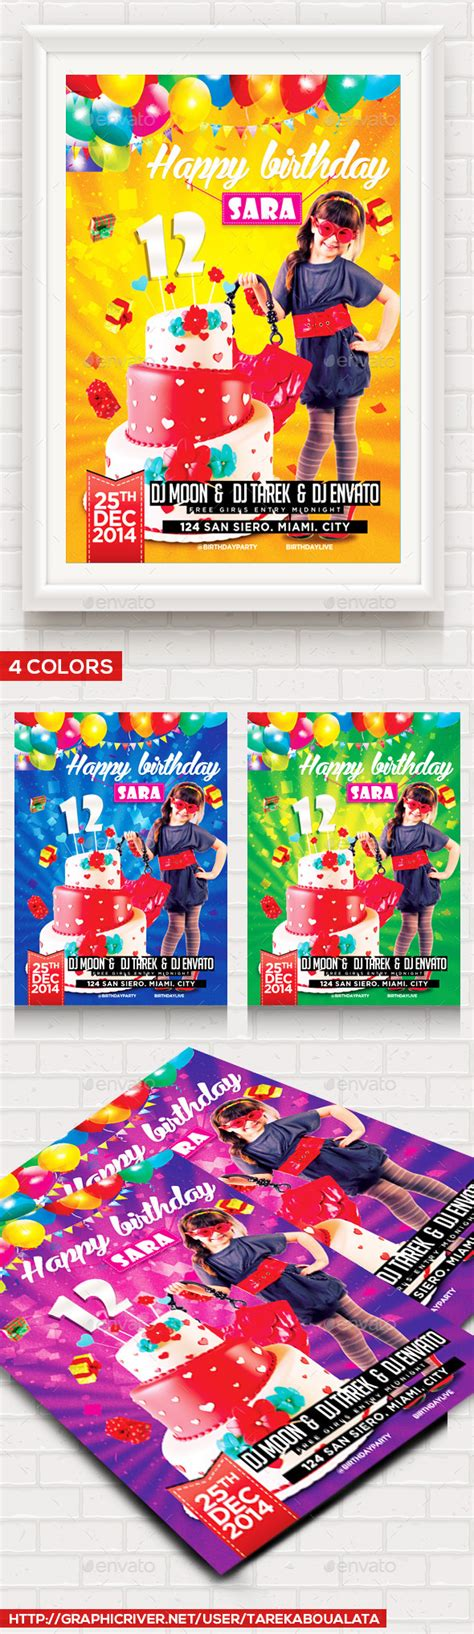 birthday party flyer template  images party flyer